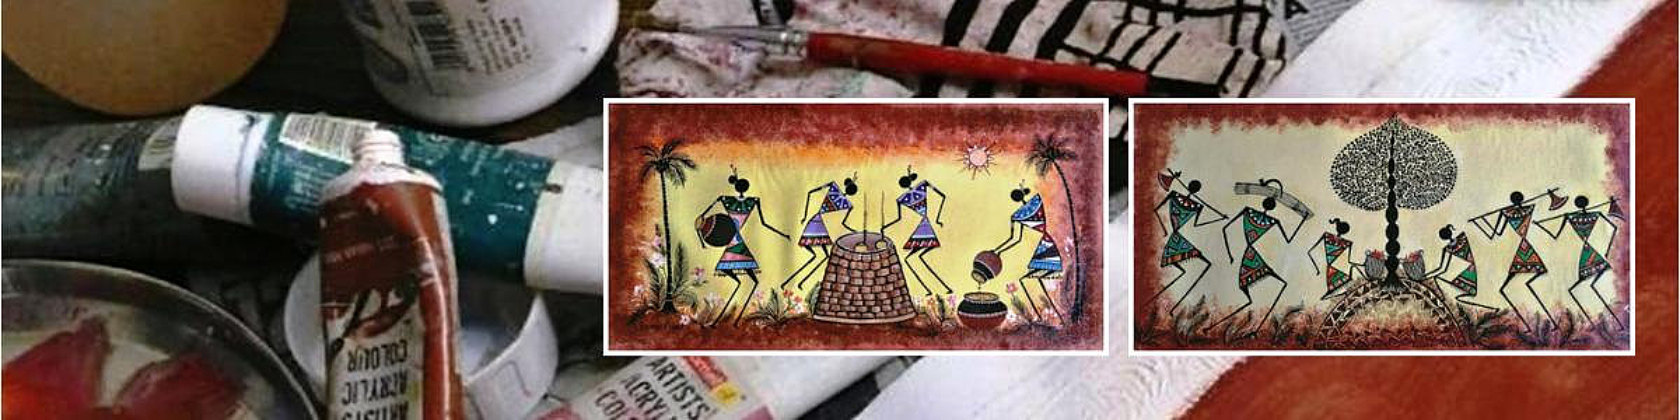 FOR SALE - Original Warli-Art paintings on canvas